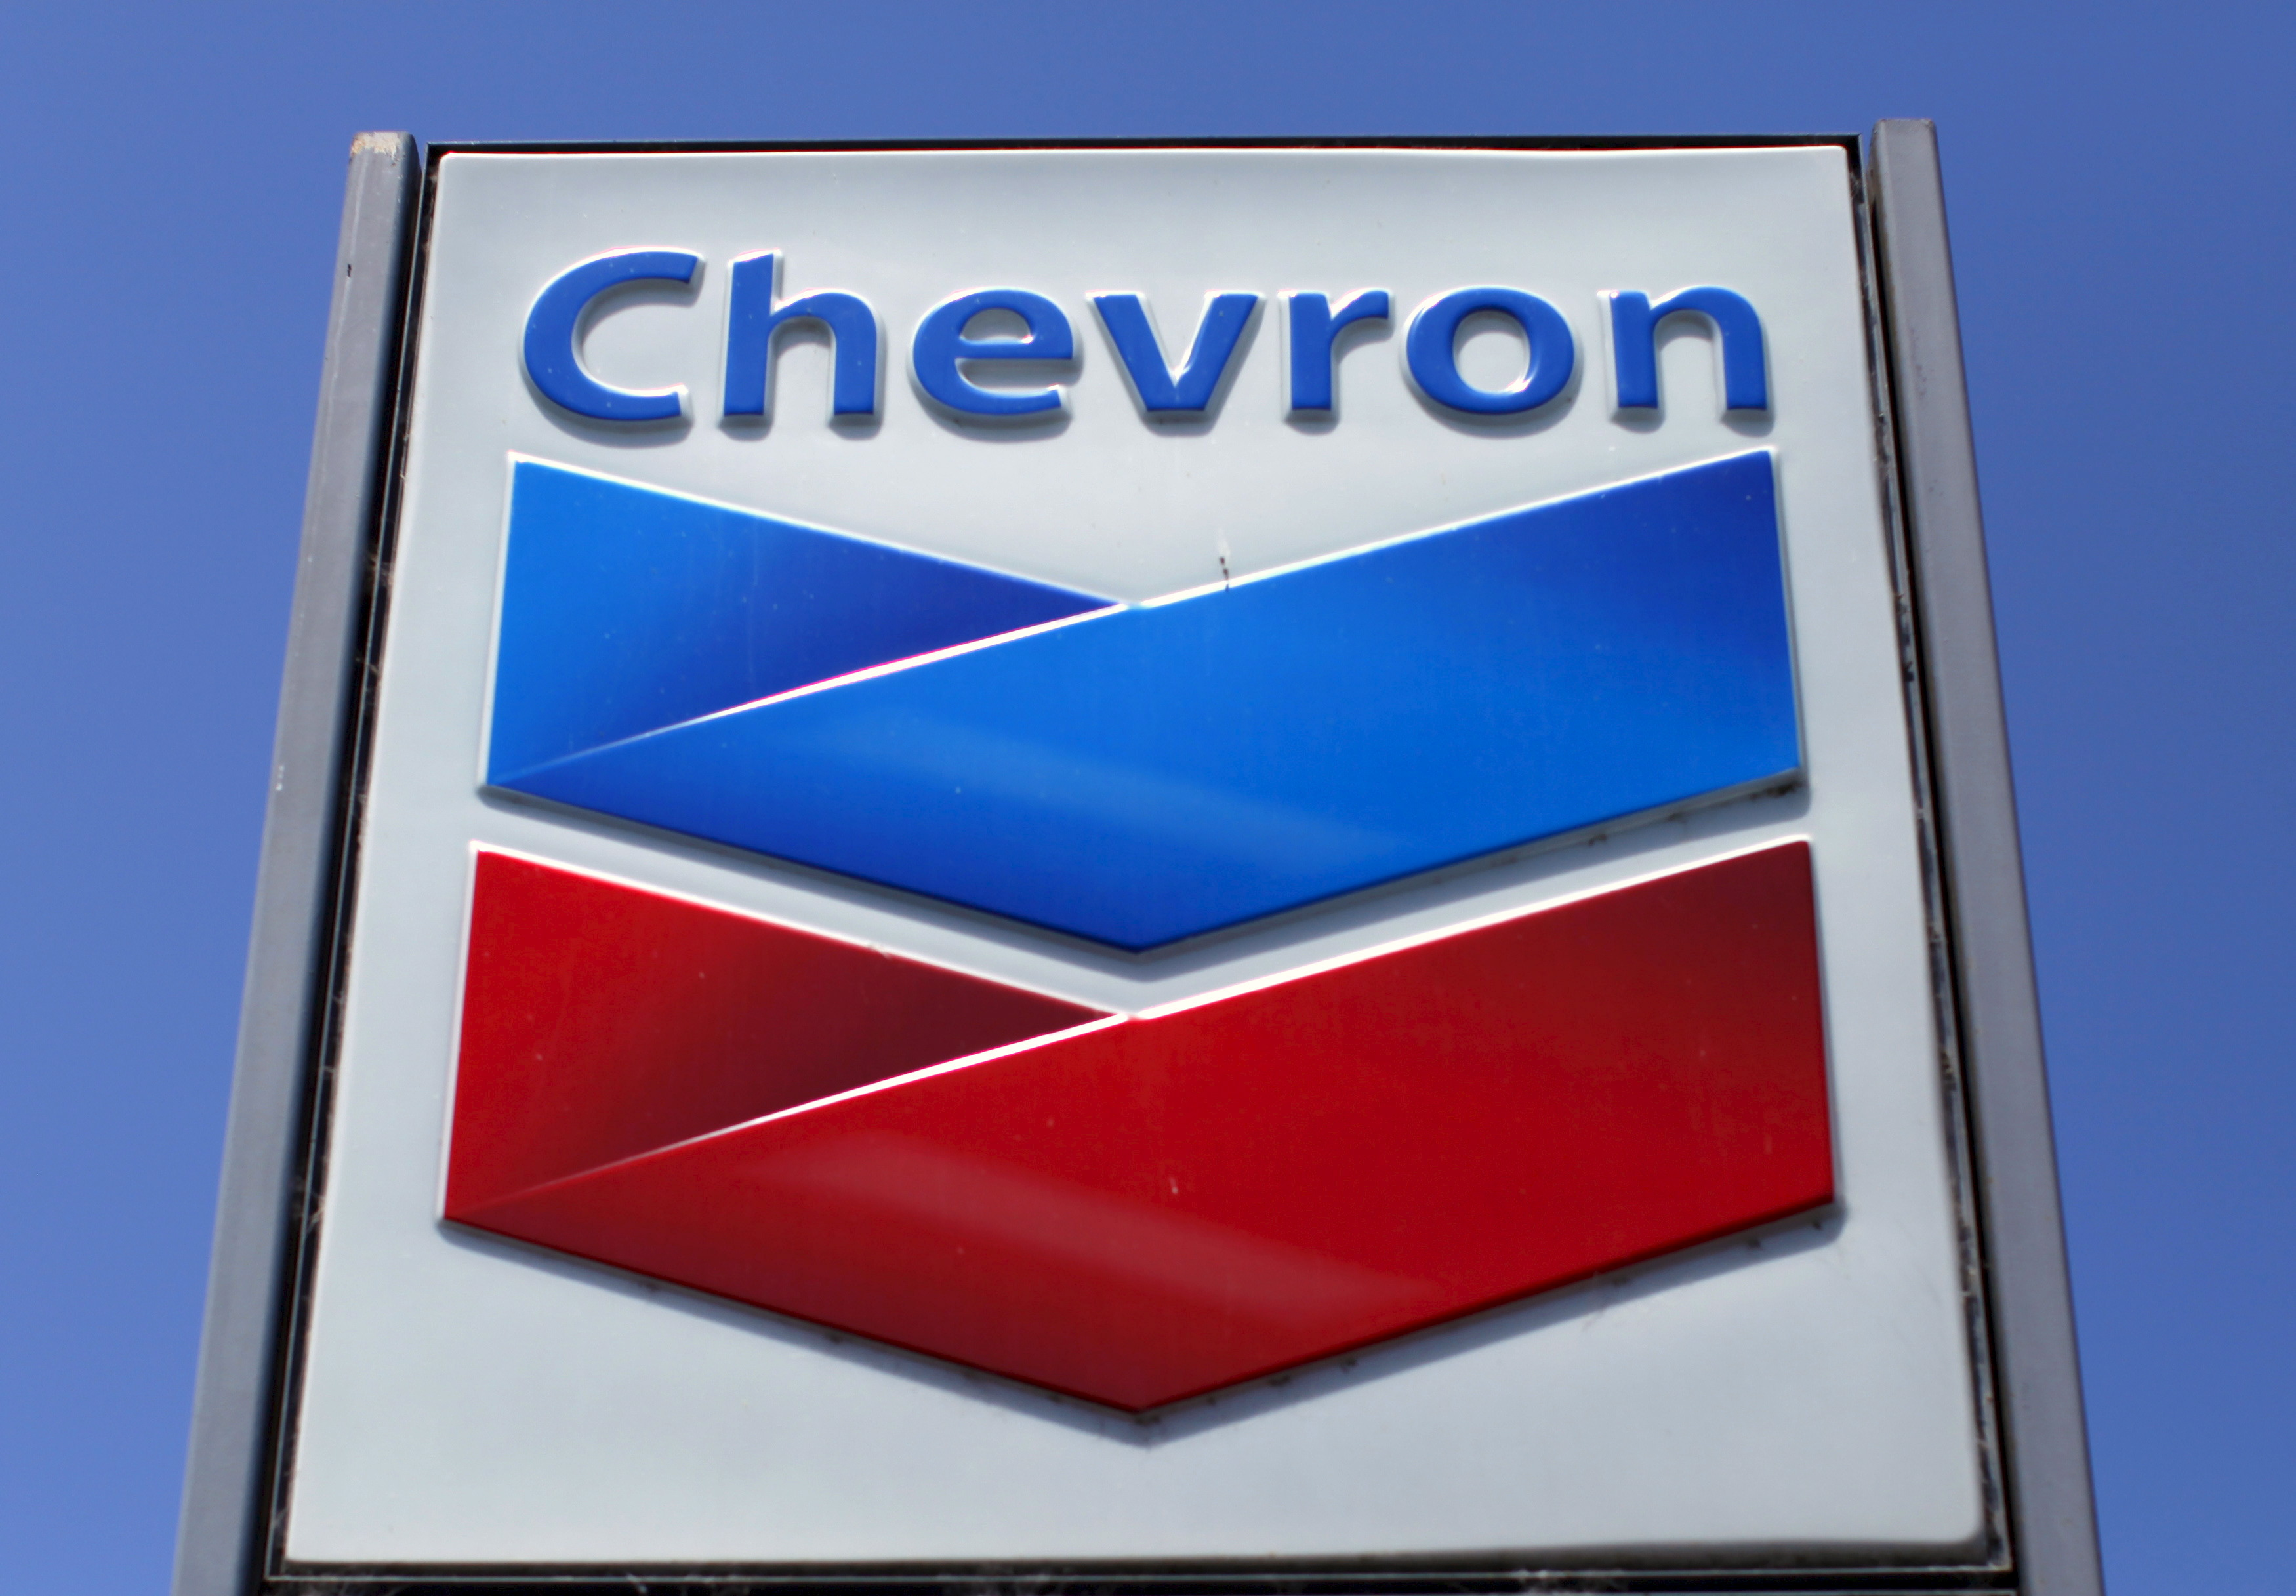 A Chevron gas station sign is seen in Del Mar, California, in this April 25, 2013 file photo. REUTERS/Mike Blake